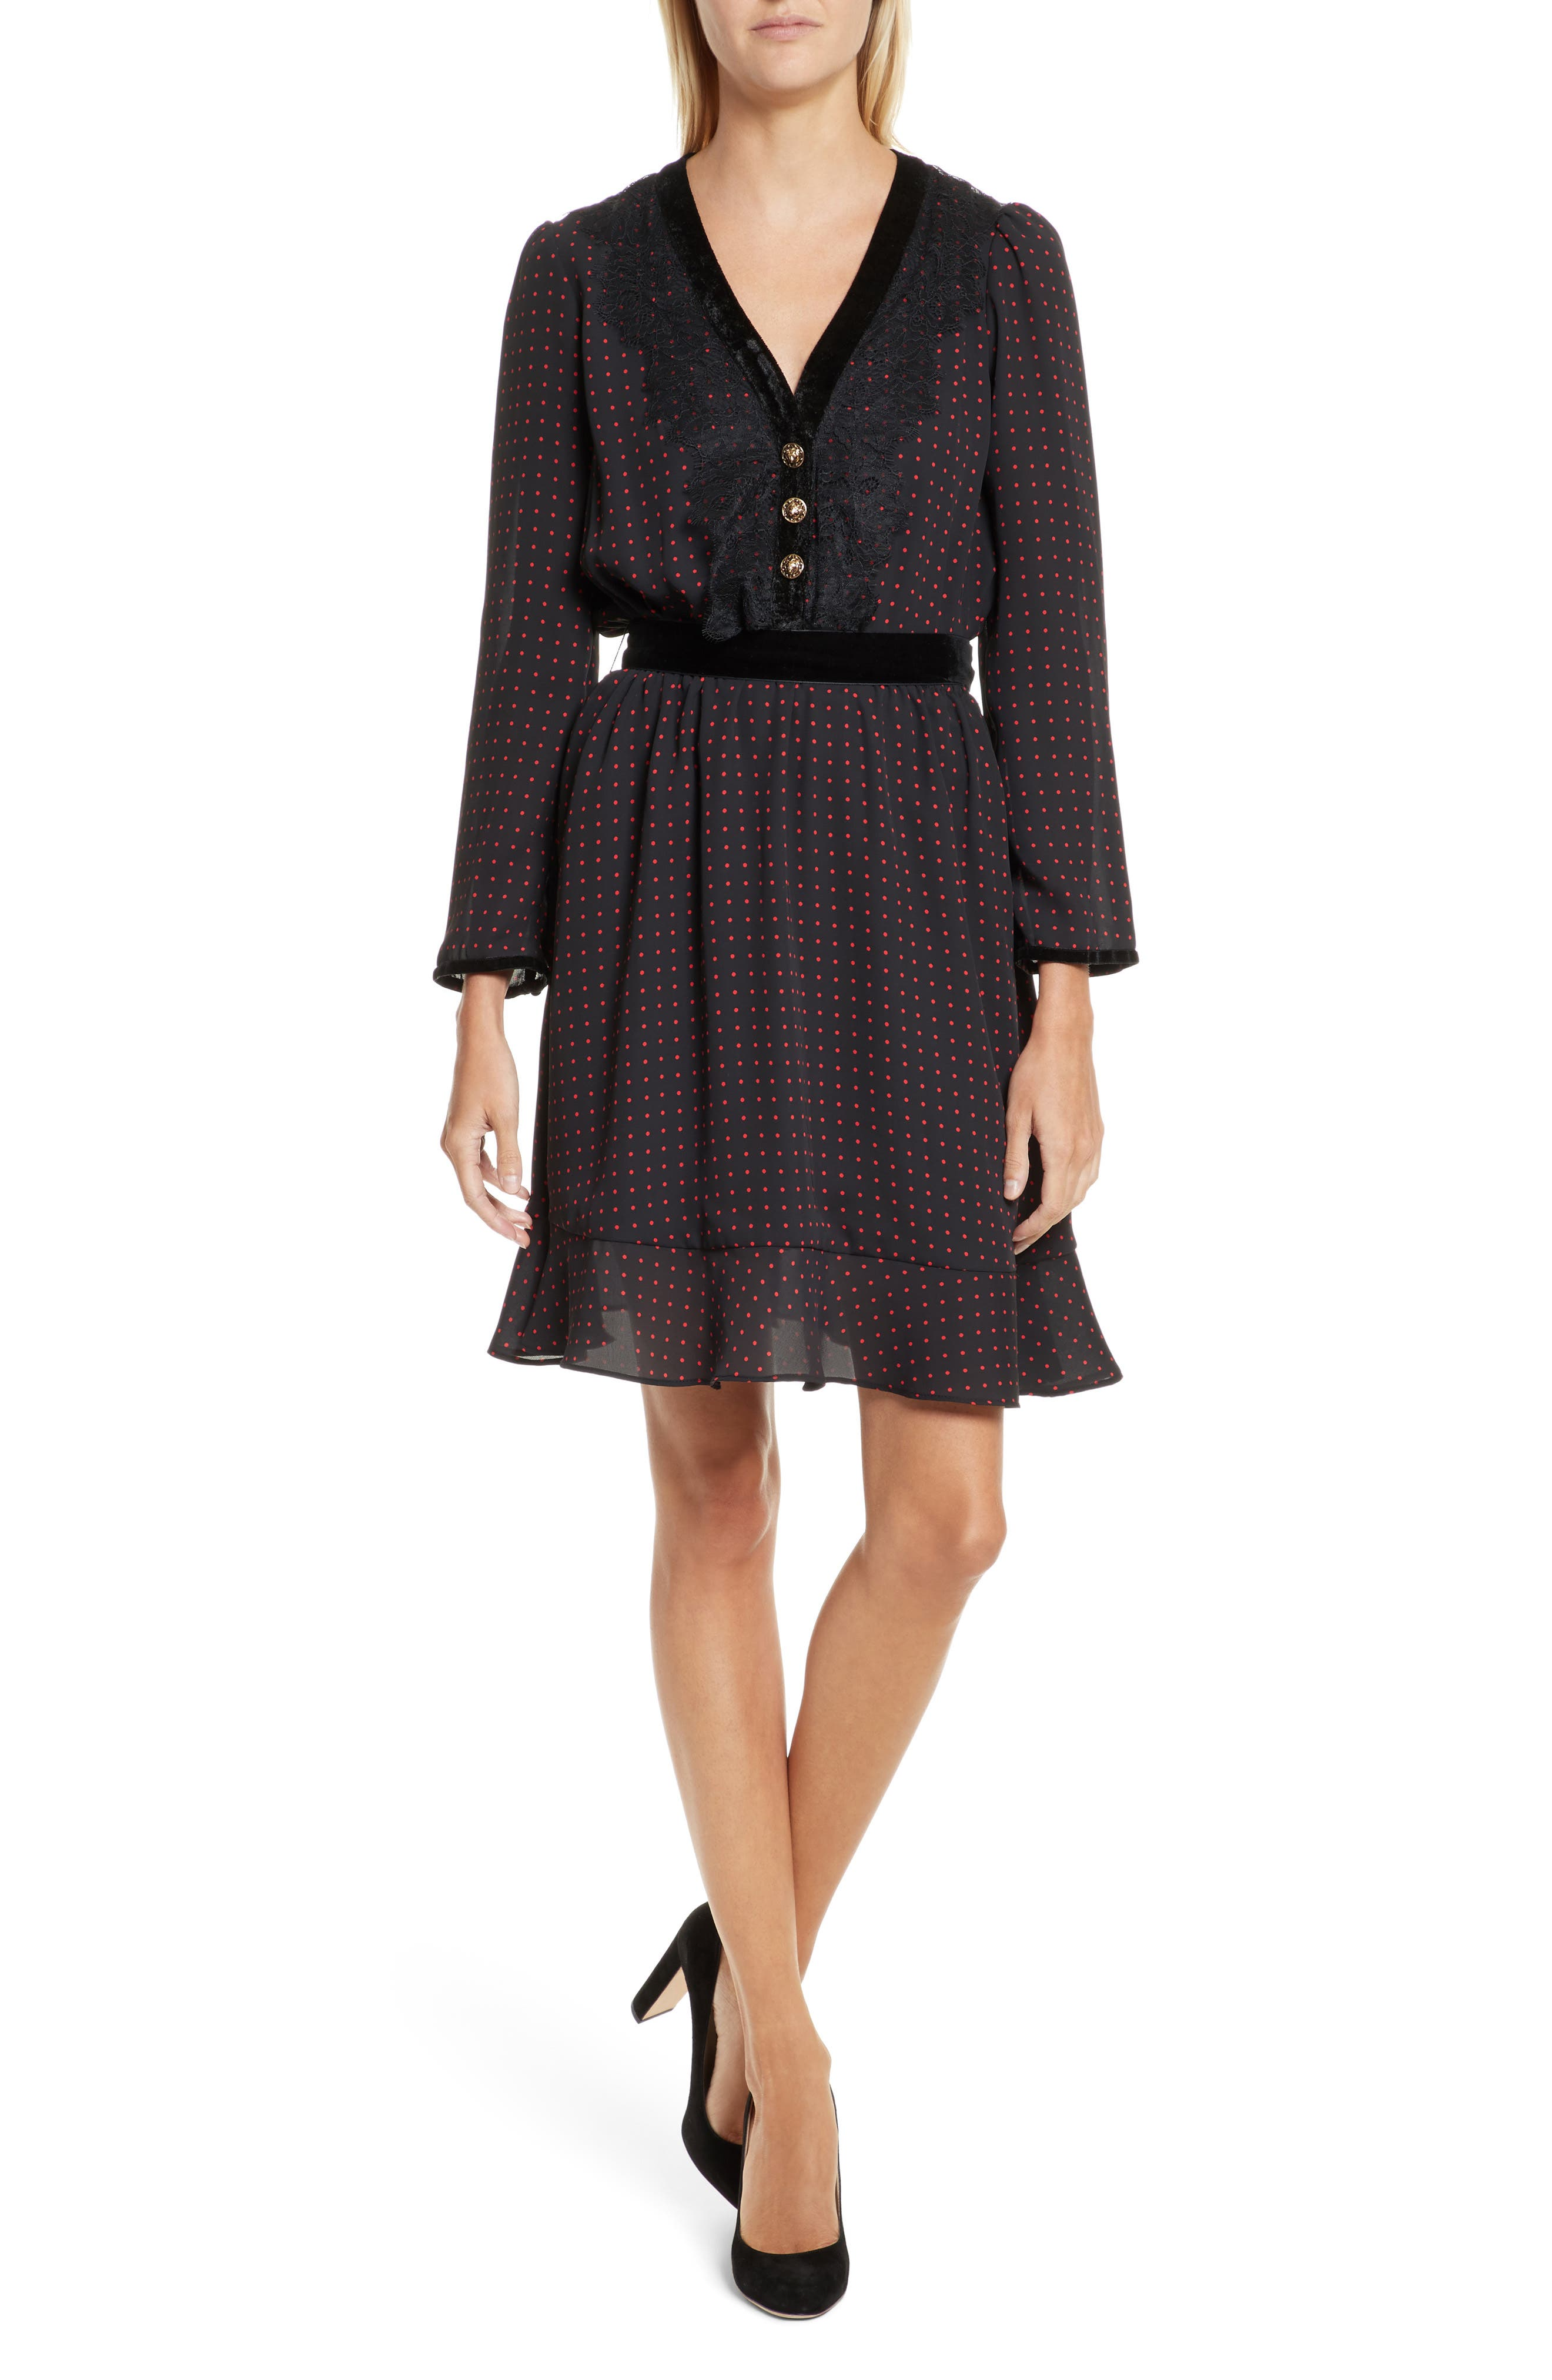 The Kooples Lace Trim Polka Dot Print Dress